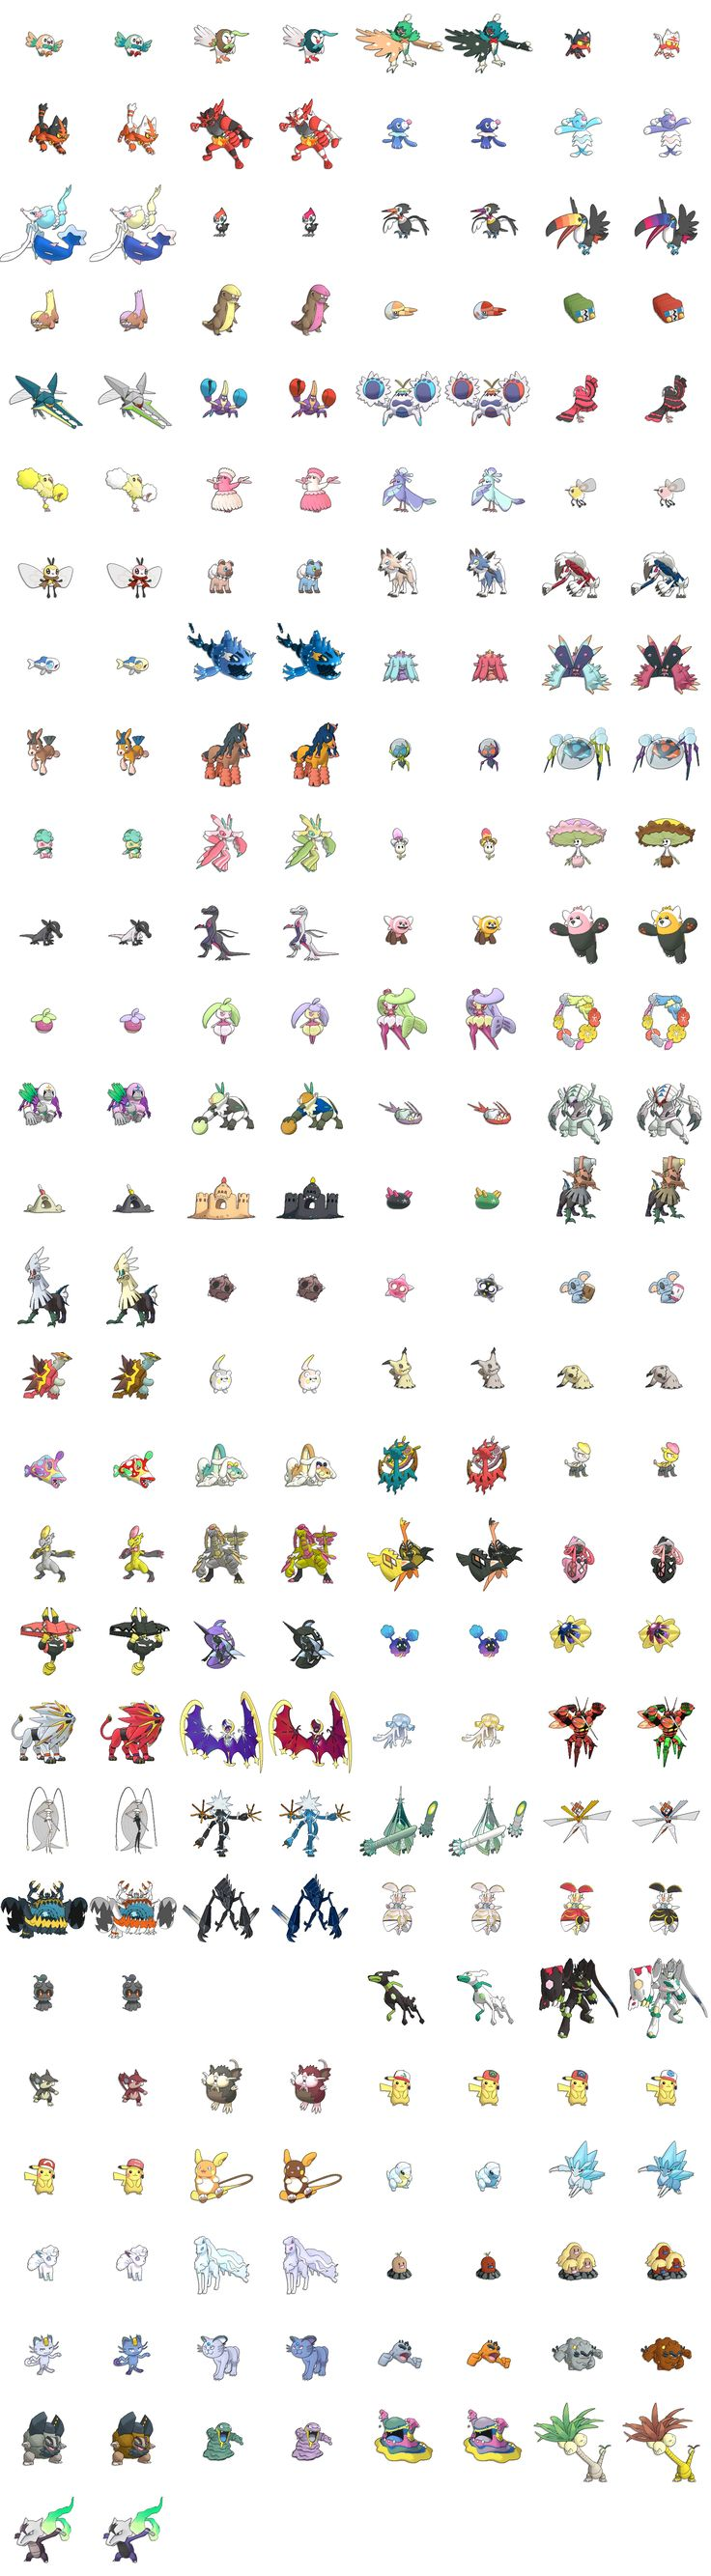 Gen 7 Sprite List WITH shiny forms (Excluding all Silvally forms)